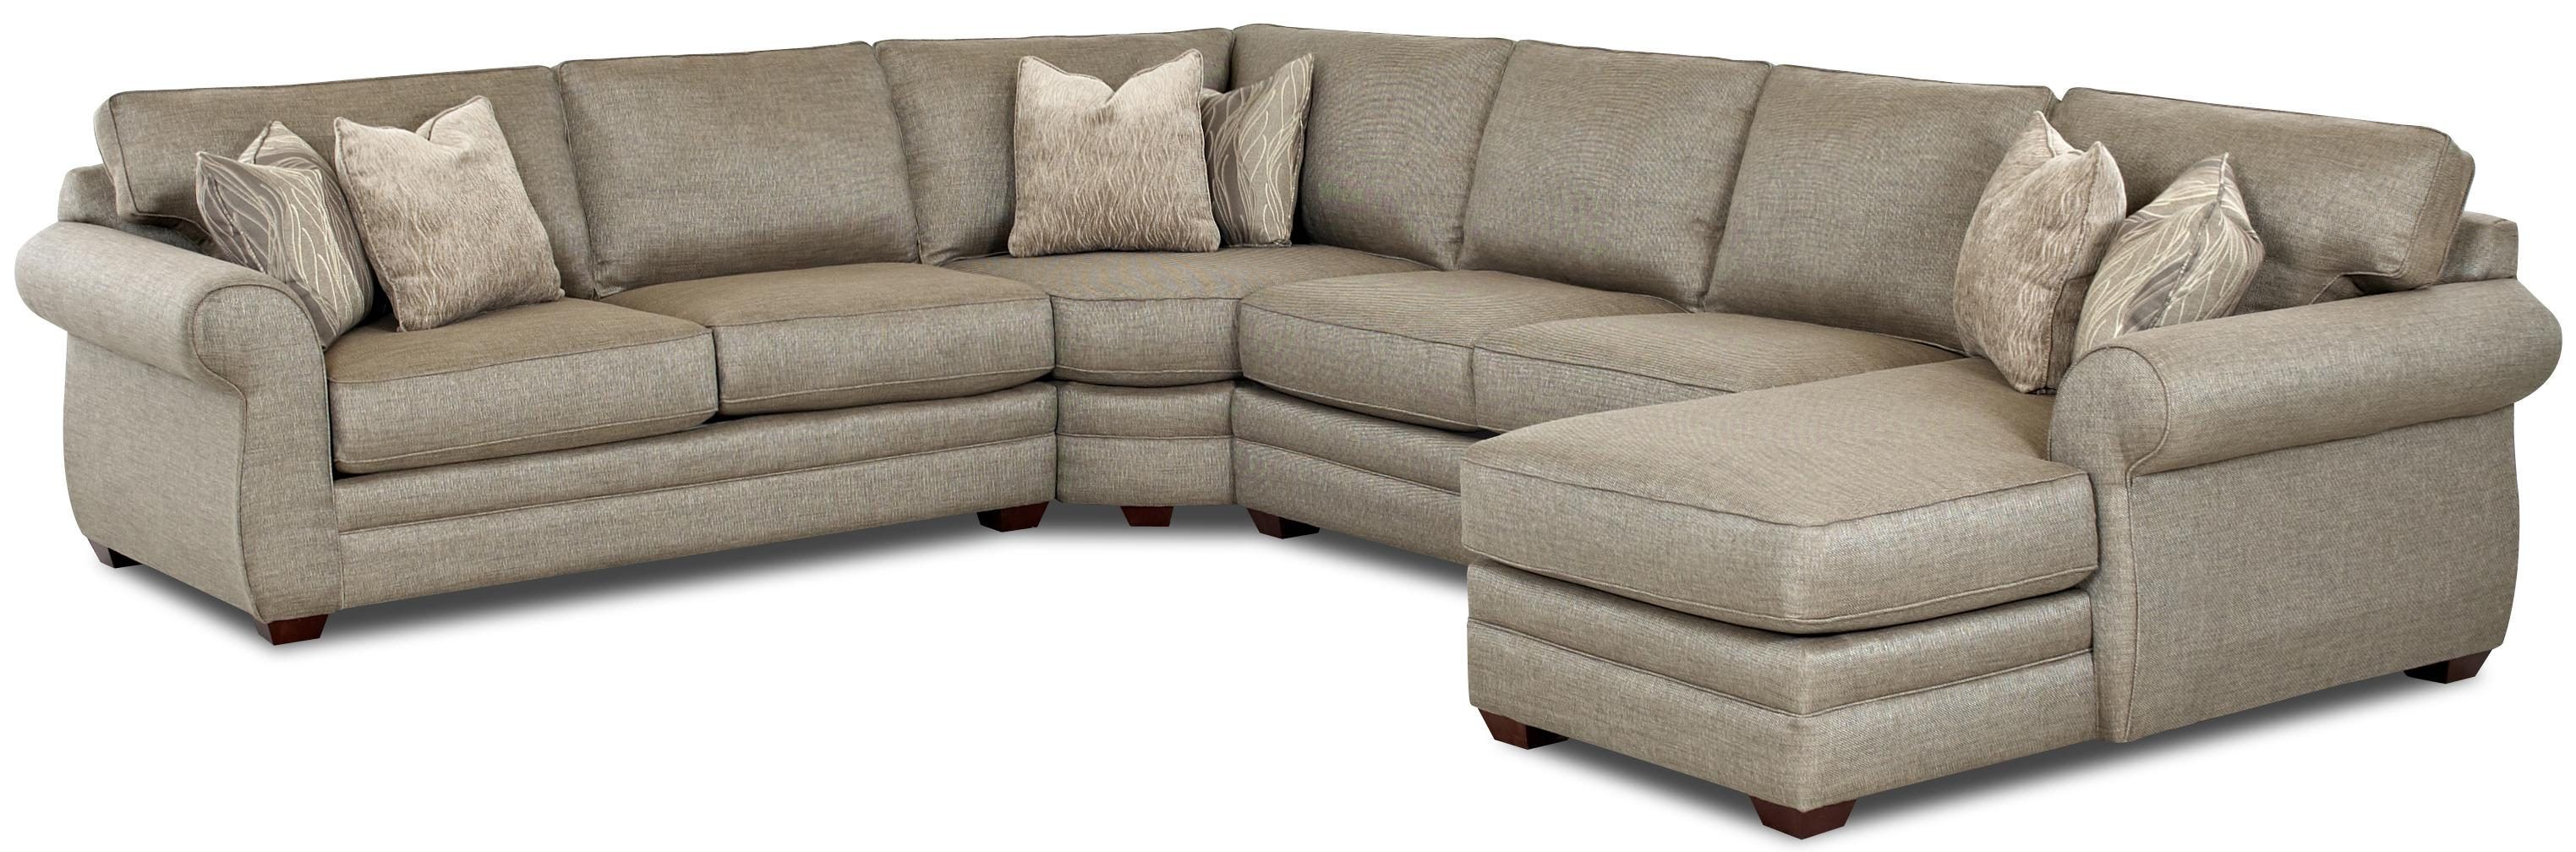 Transitional Sectional Sofa with Right Chaise by Klaussner ...